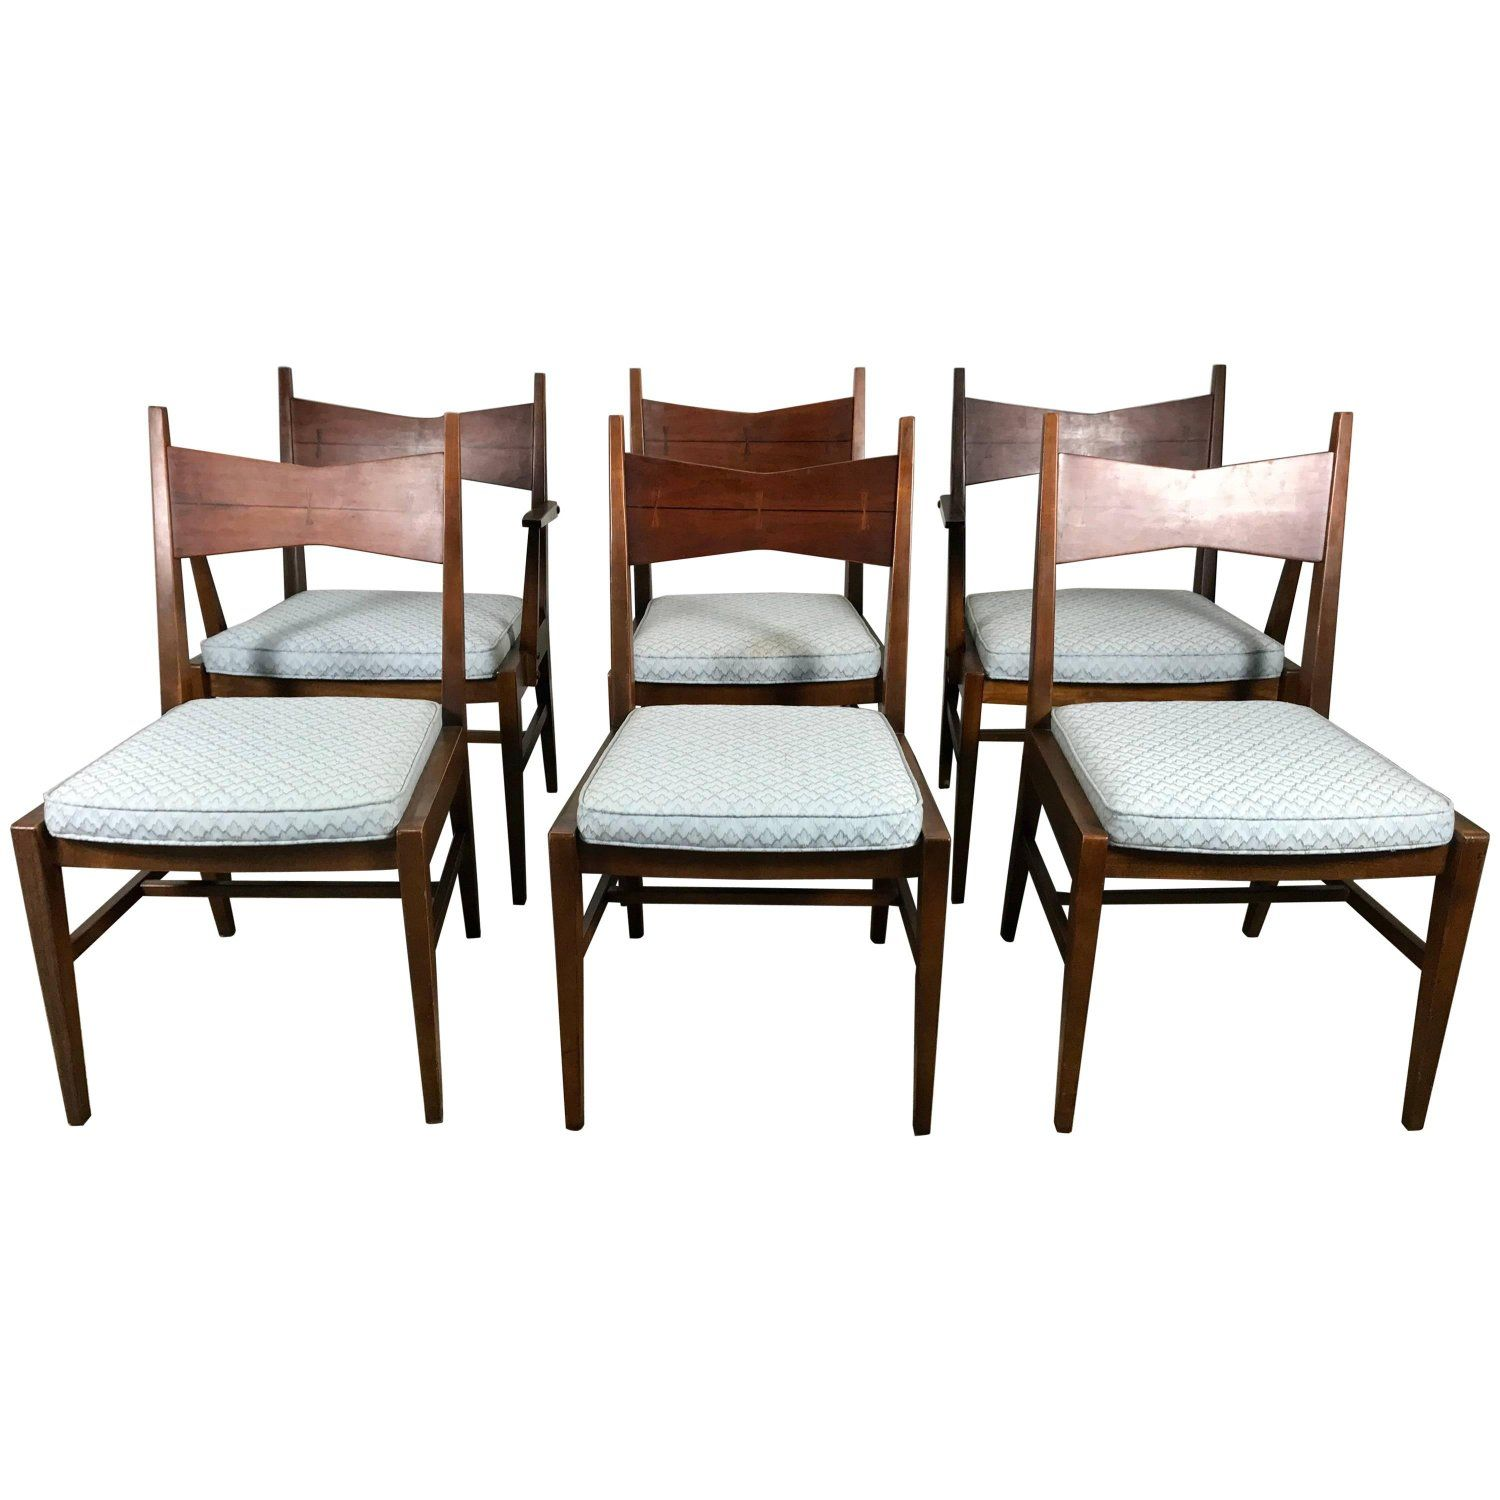 Set Of Six Mid-Century Modern Dining Chairs, Lane Tuxedo